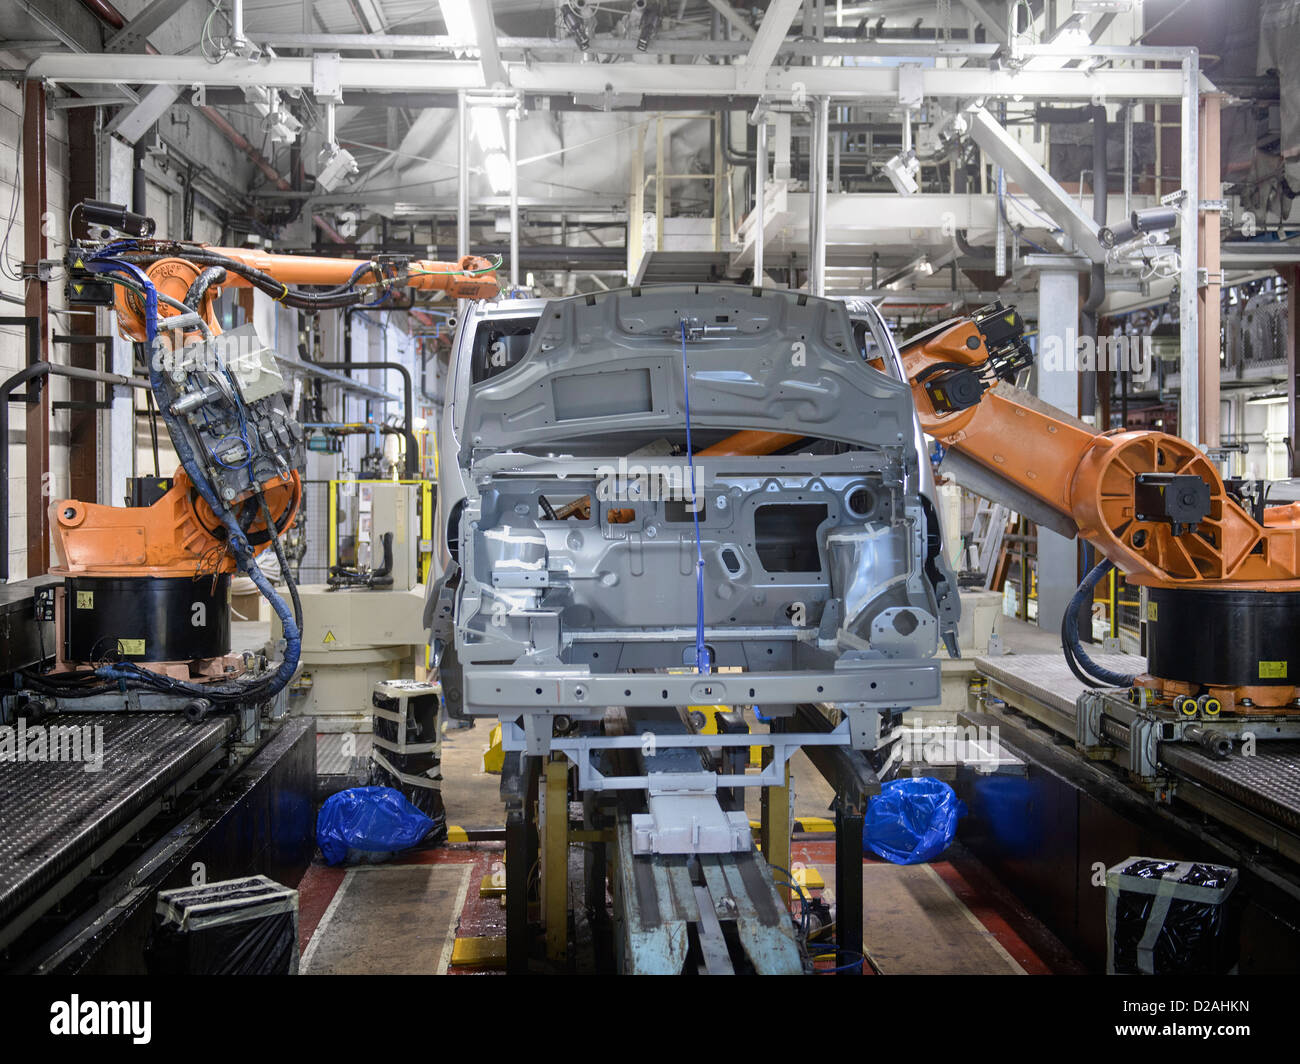 Robots at work in car factory - Stock Image